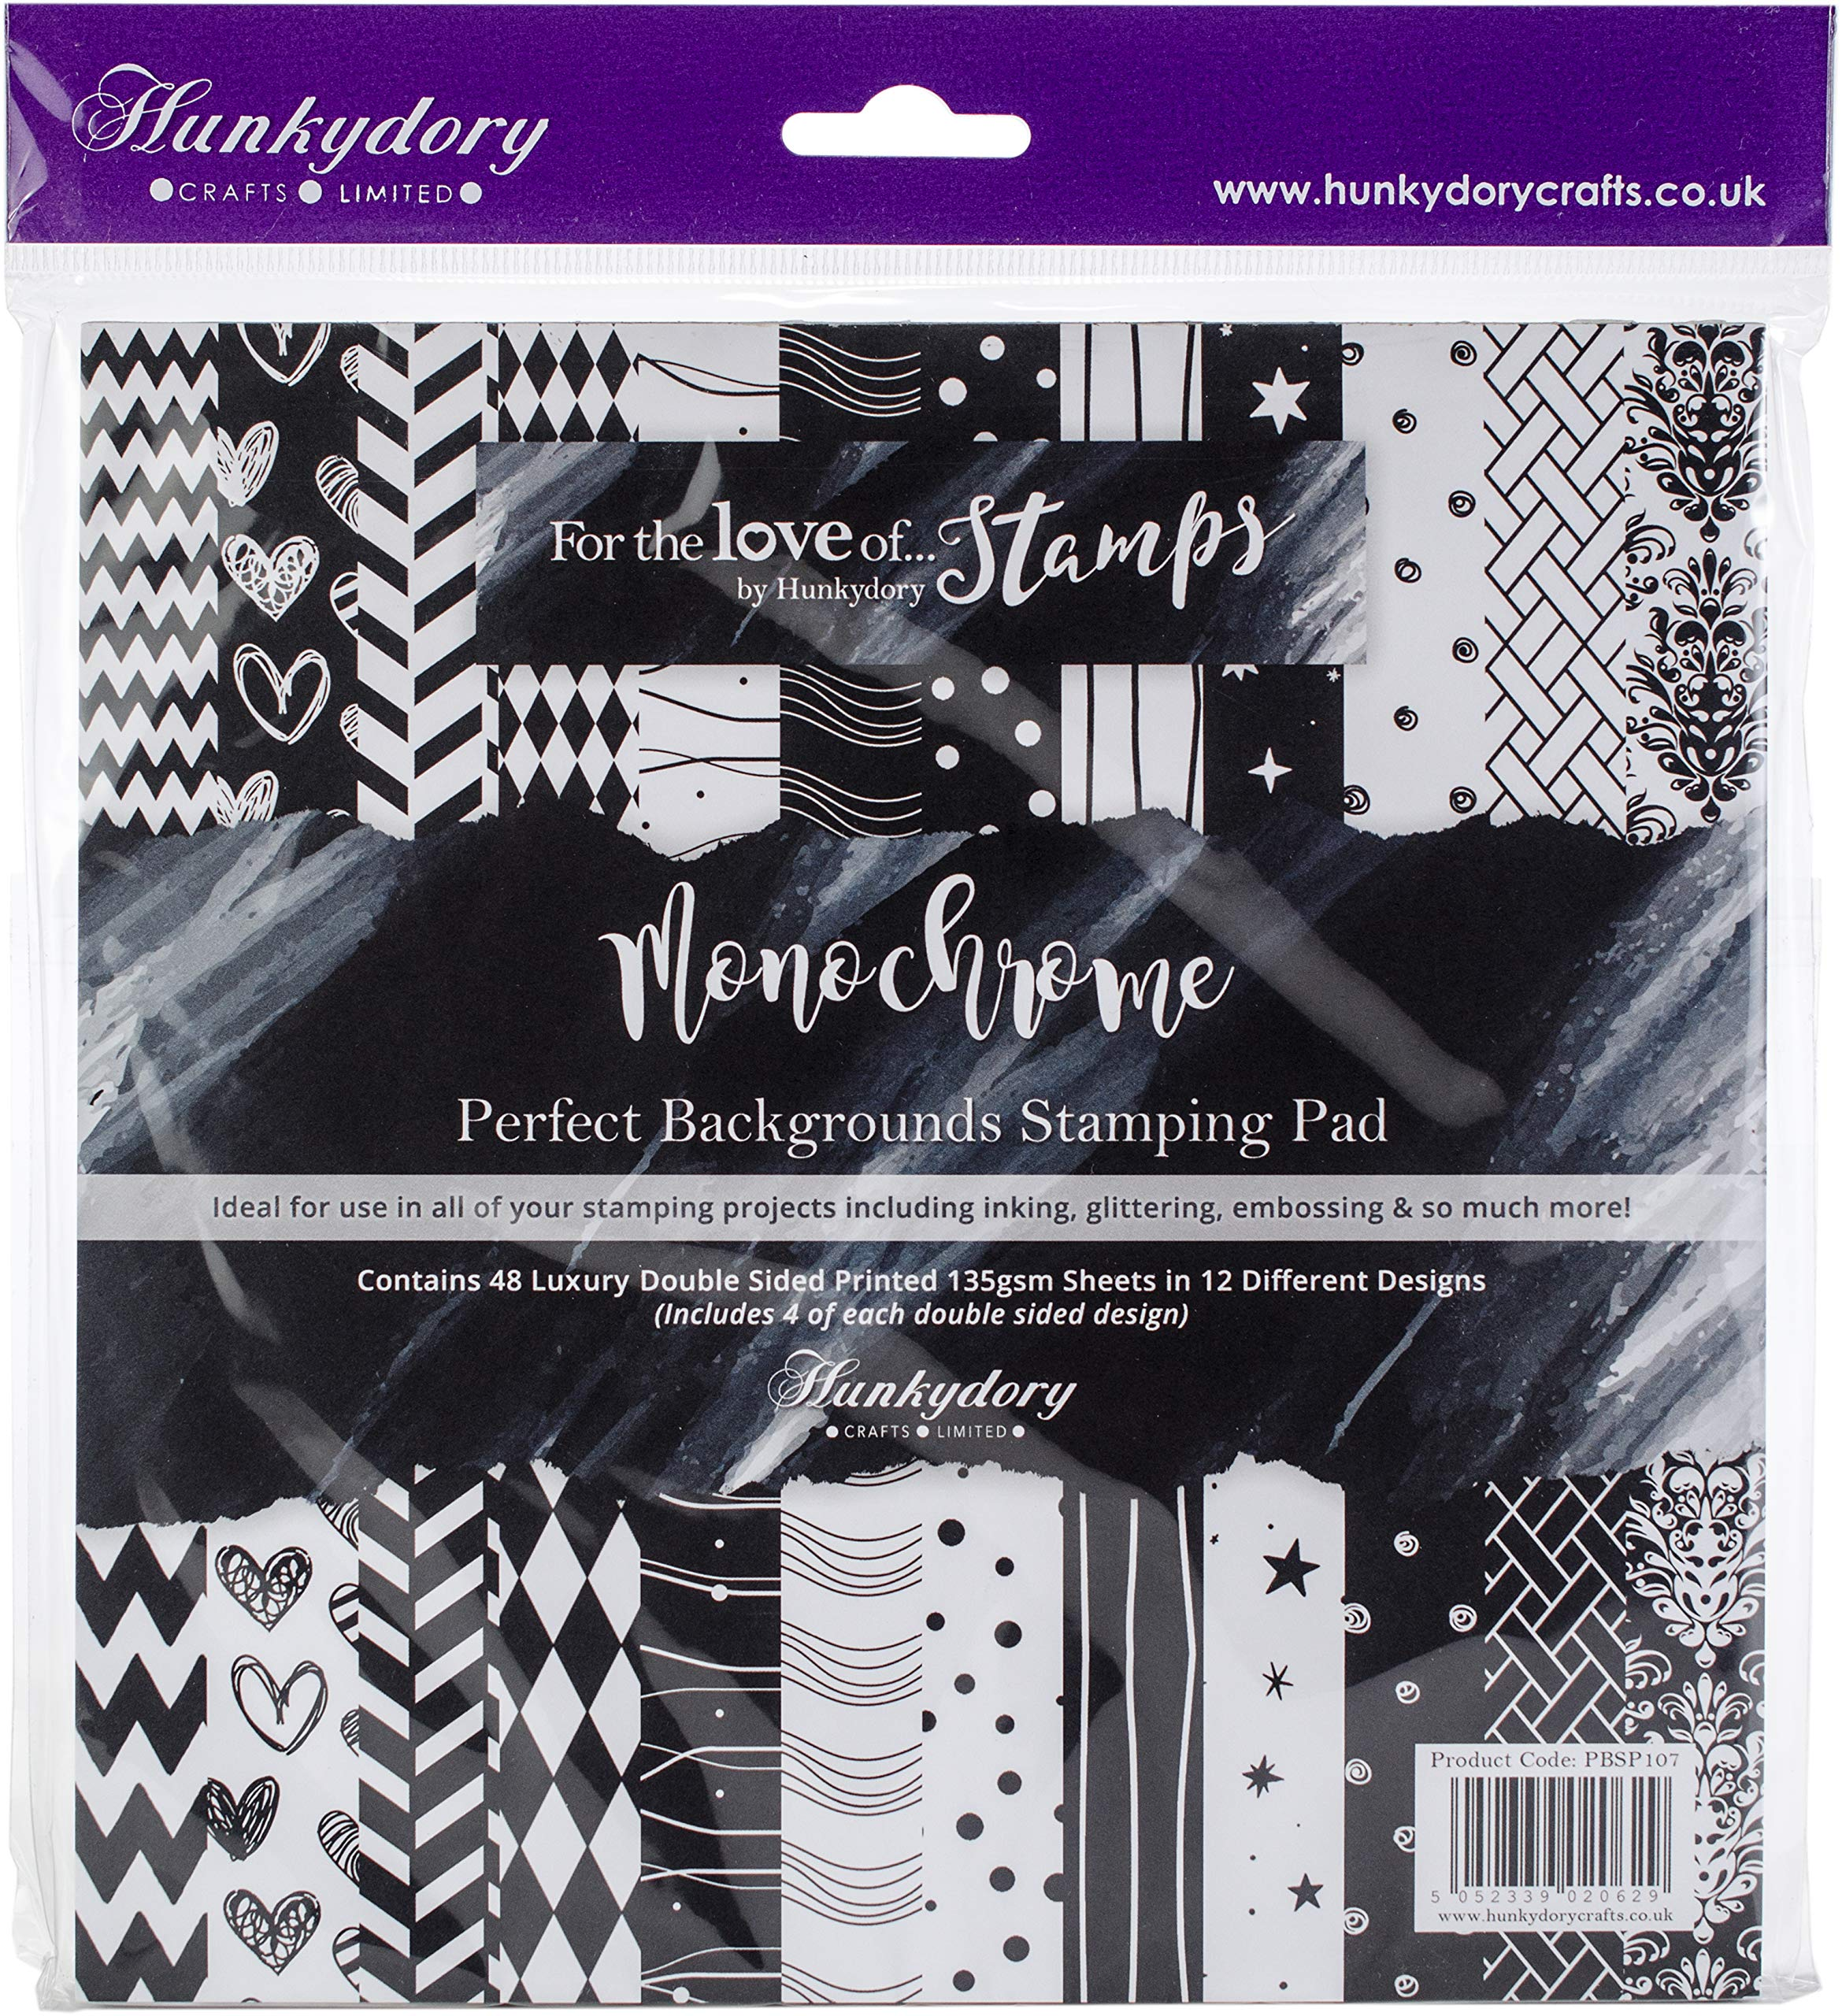 Hunkydory Crafts Pbsp107 Hunkydory Perfect Backgrounds Stamp Paper Pad 8x8 48/Pkg-Monochrome